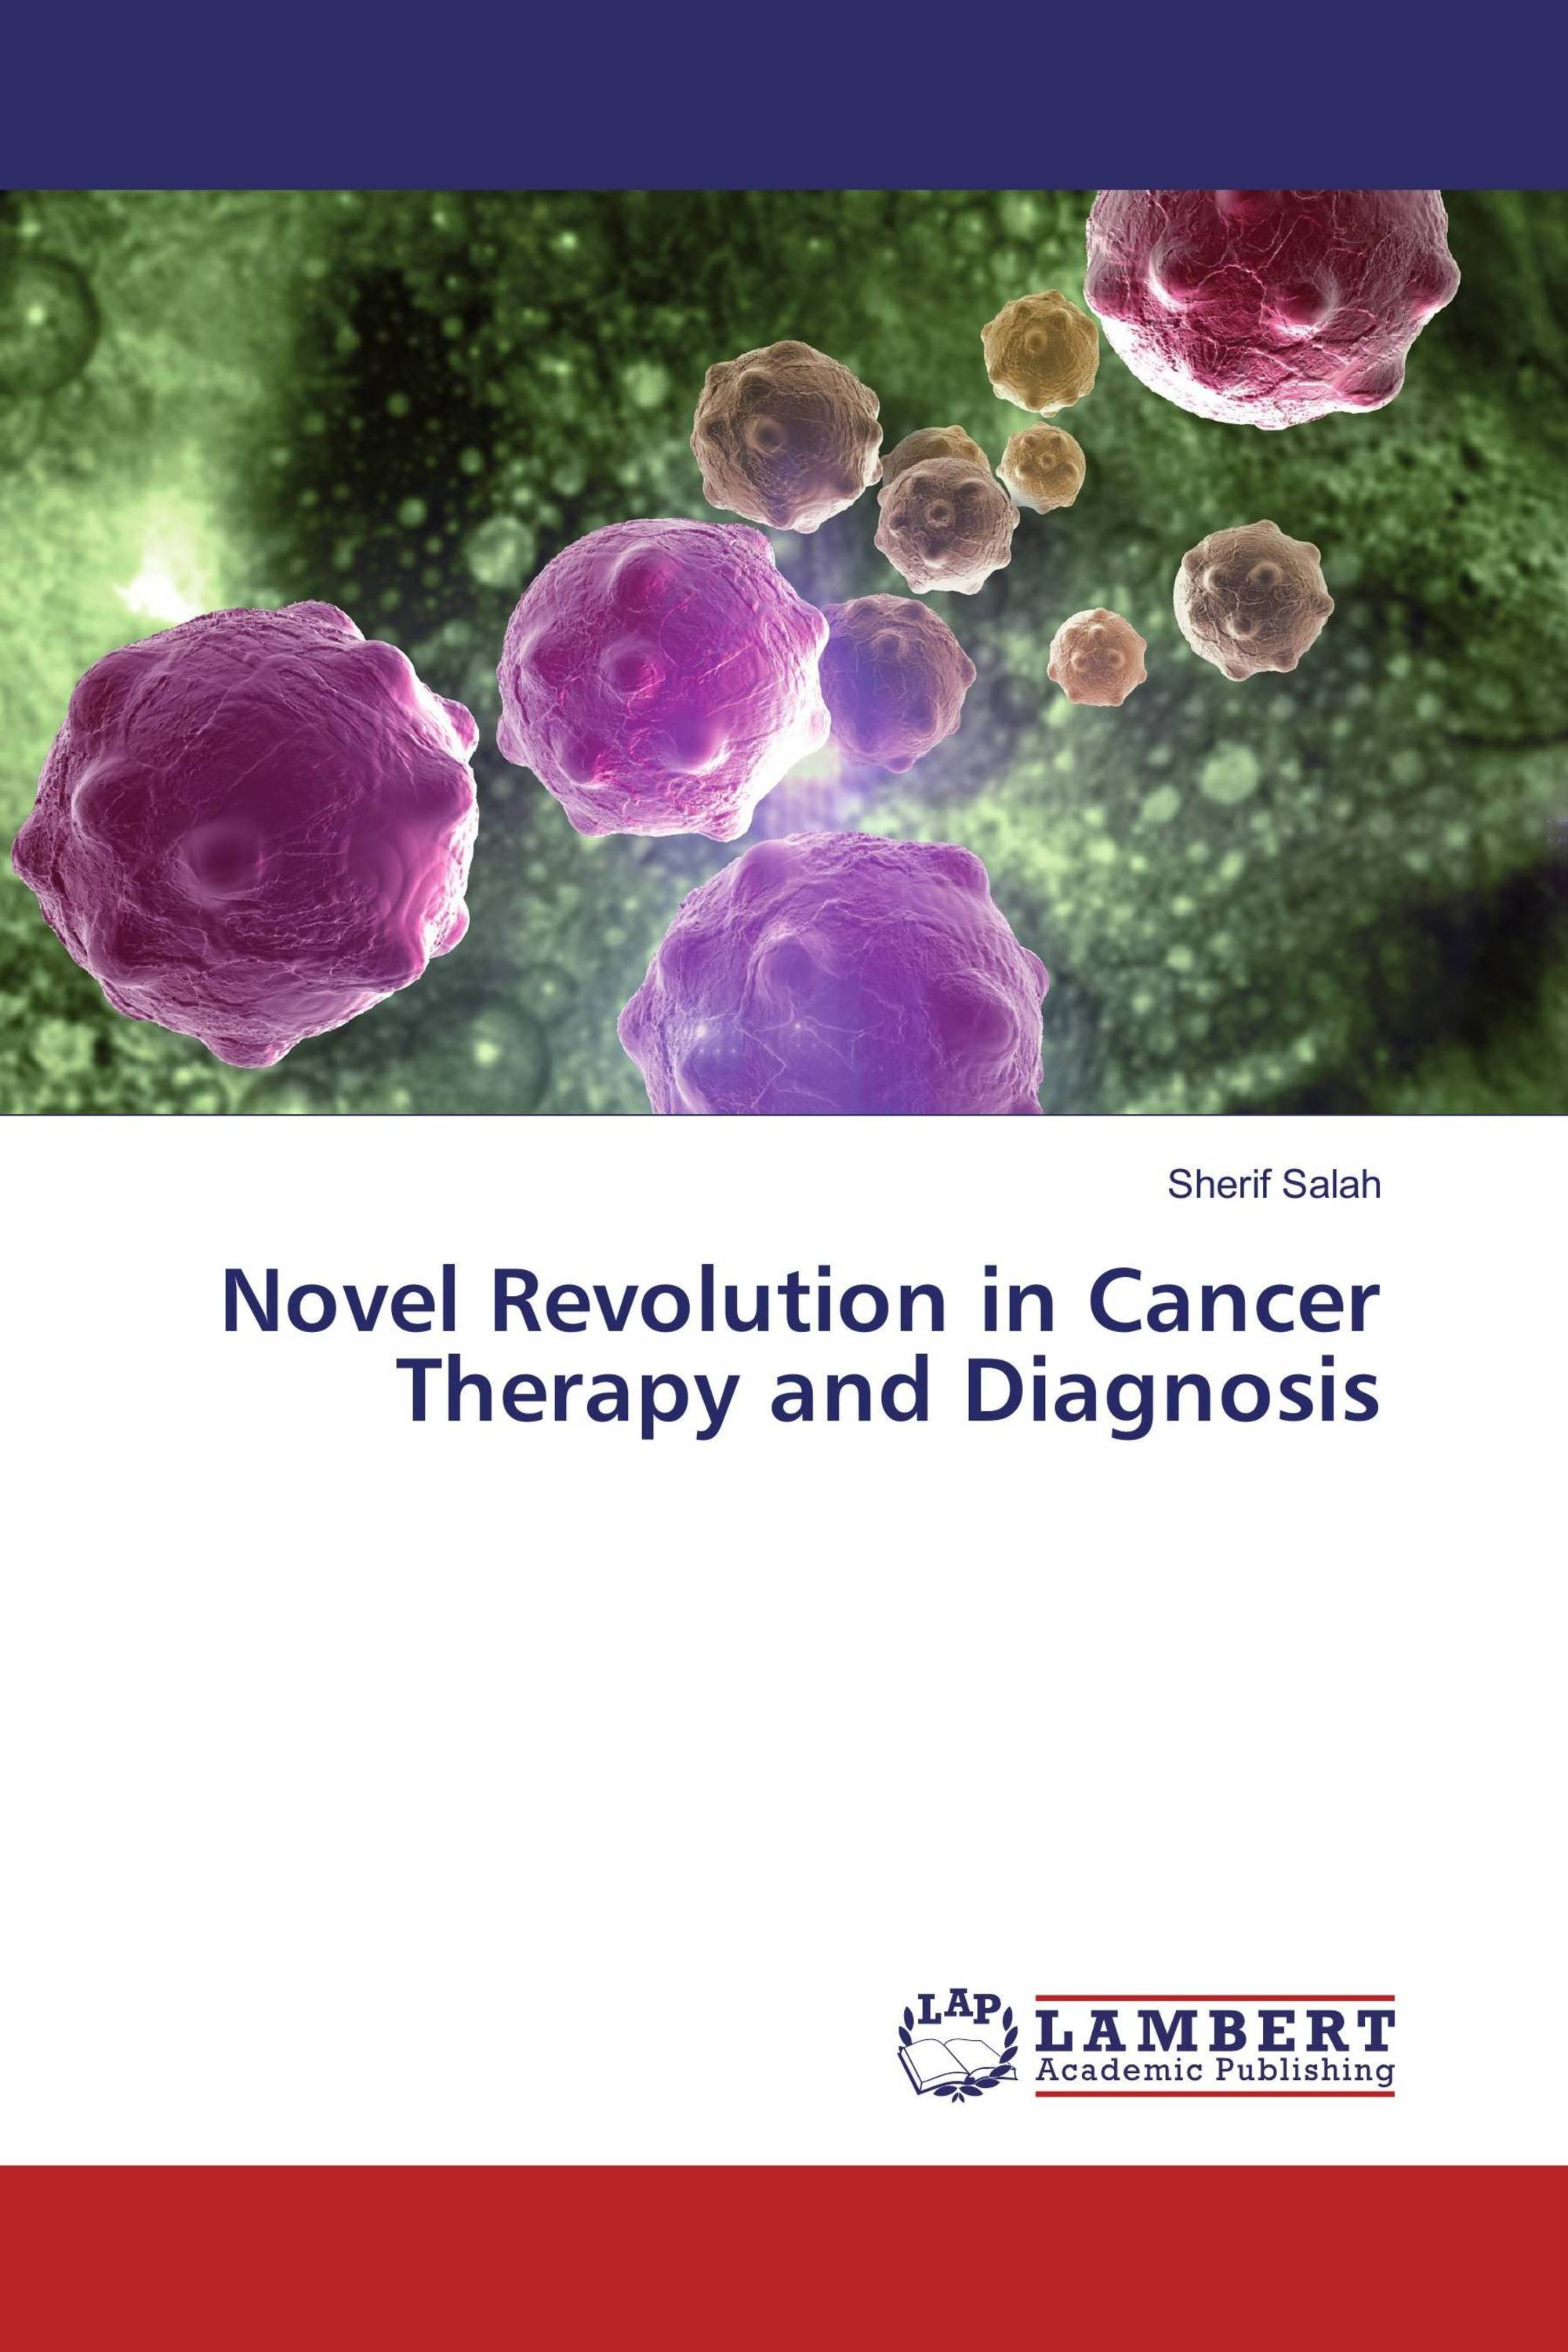 Novel Revolution in Cancer Therapy and Diagnosis